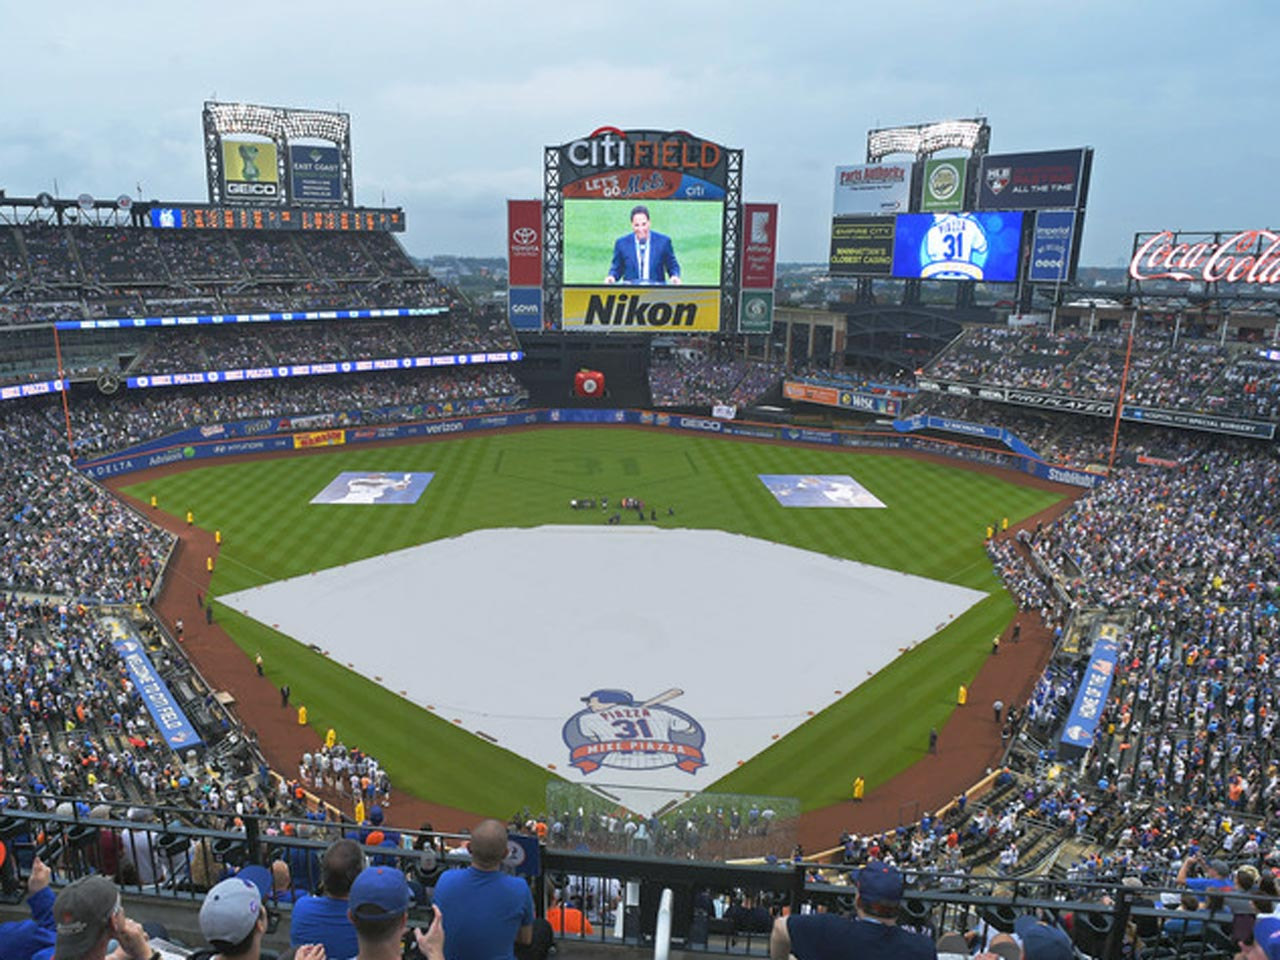 Avaya: An MVP for the Mets